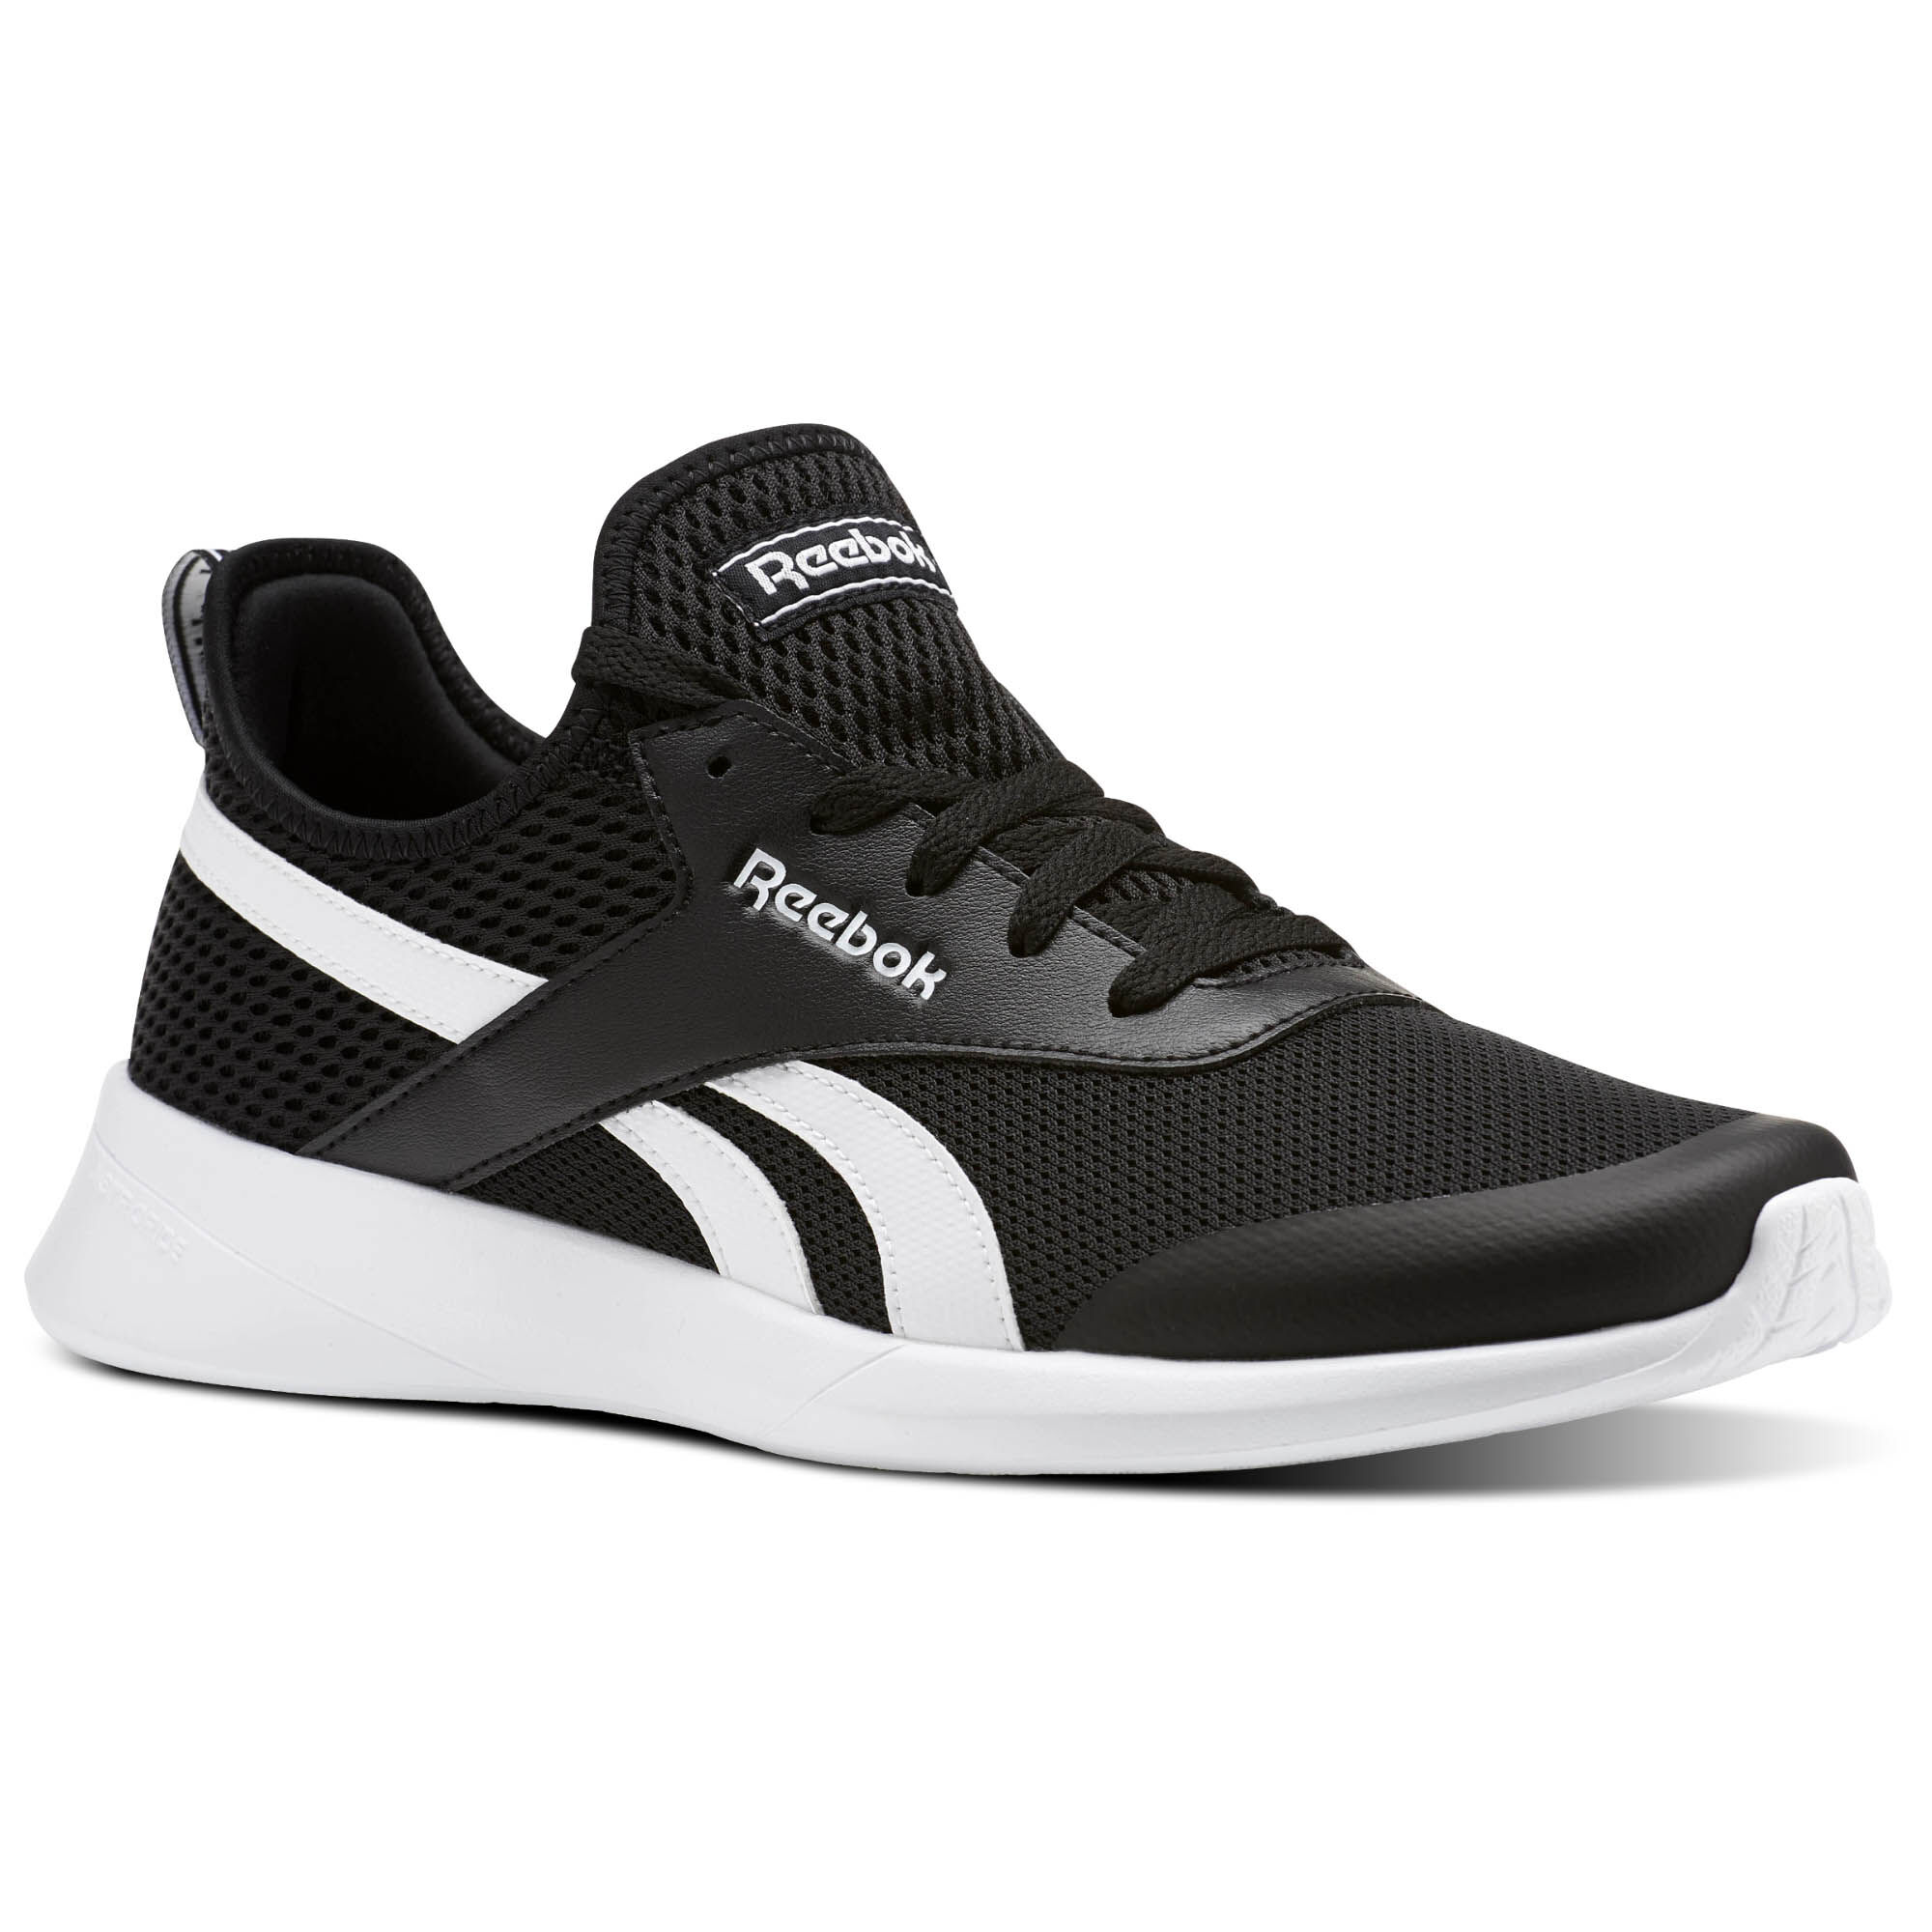 Reebok - Reebok Royal EC Ride 2 Black/White CM9366